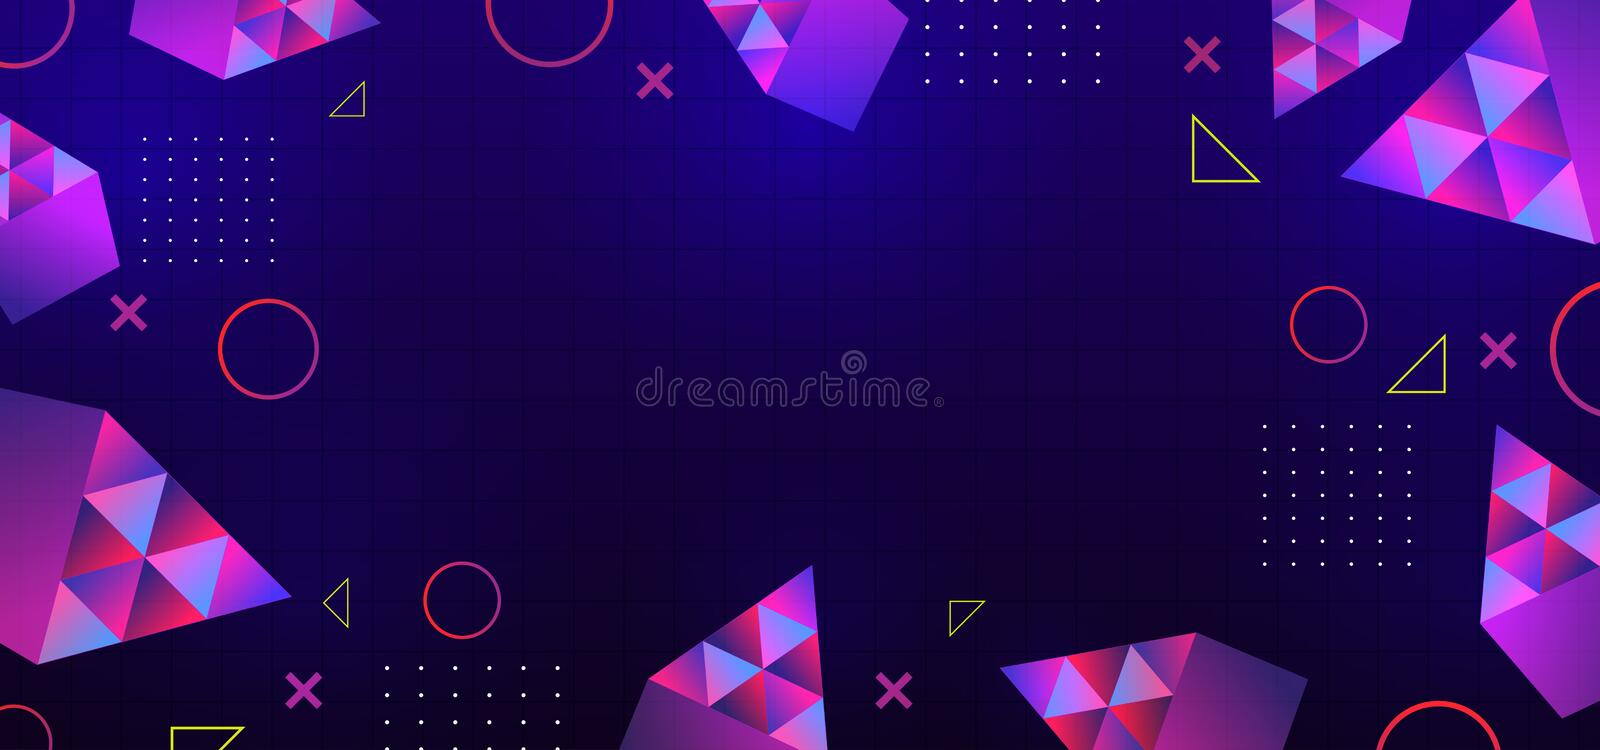 Neon glowing techno lines, hi-tech futuristic abstract background template with geometric shapes vector illustration royalty free illustration